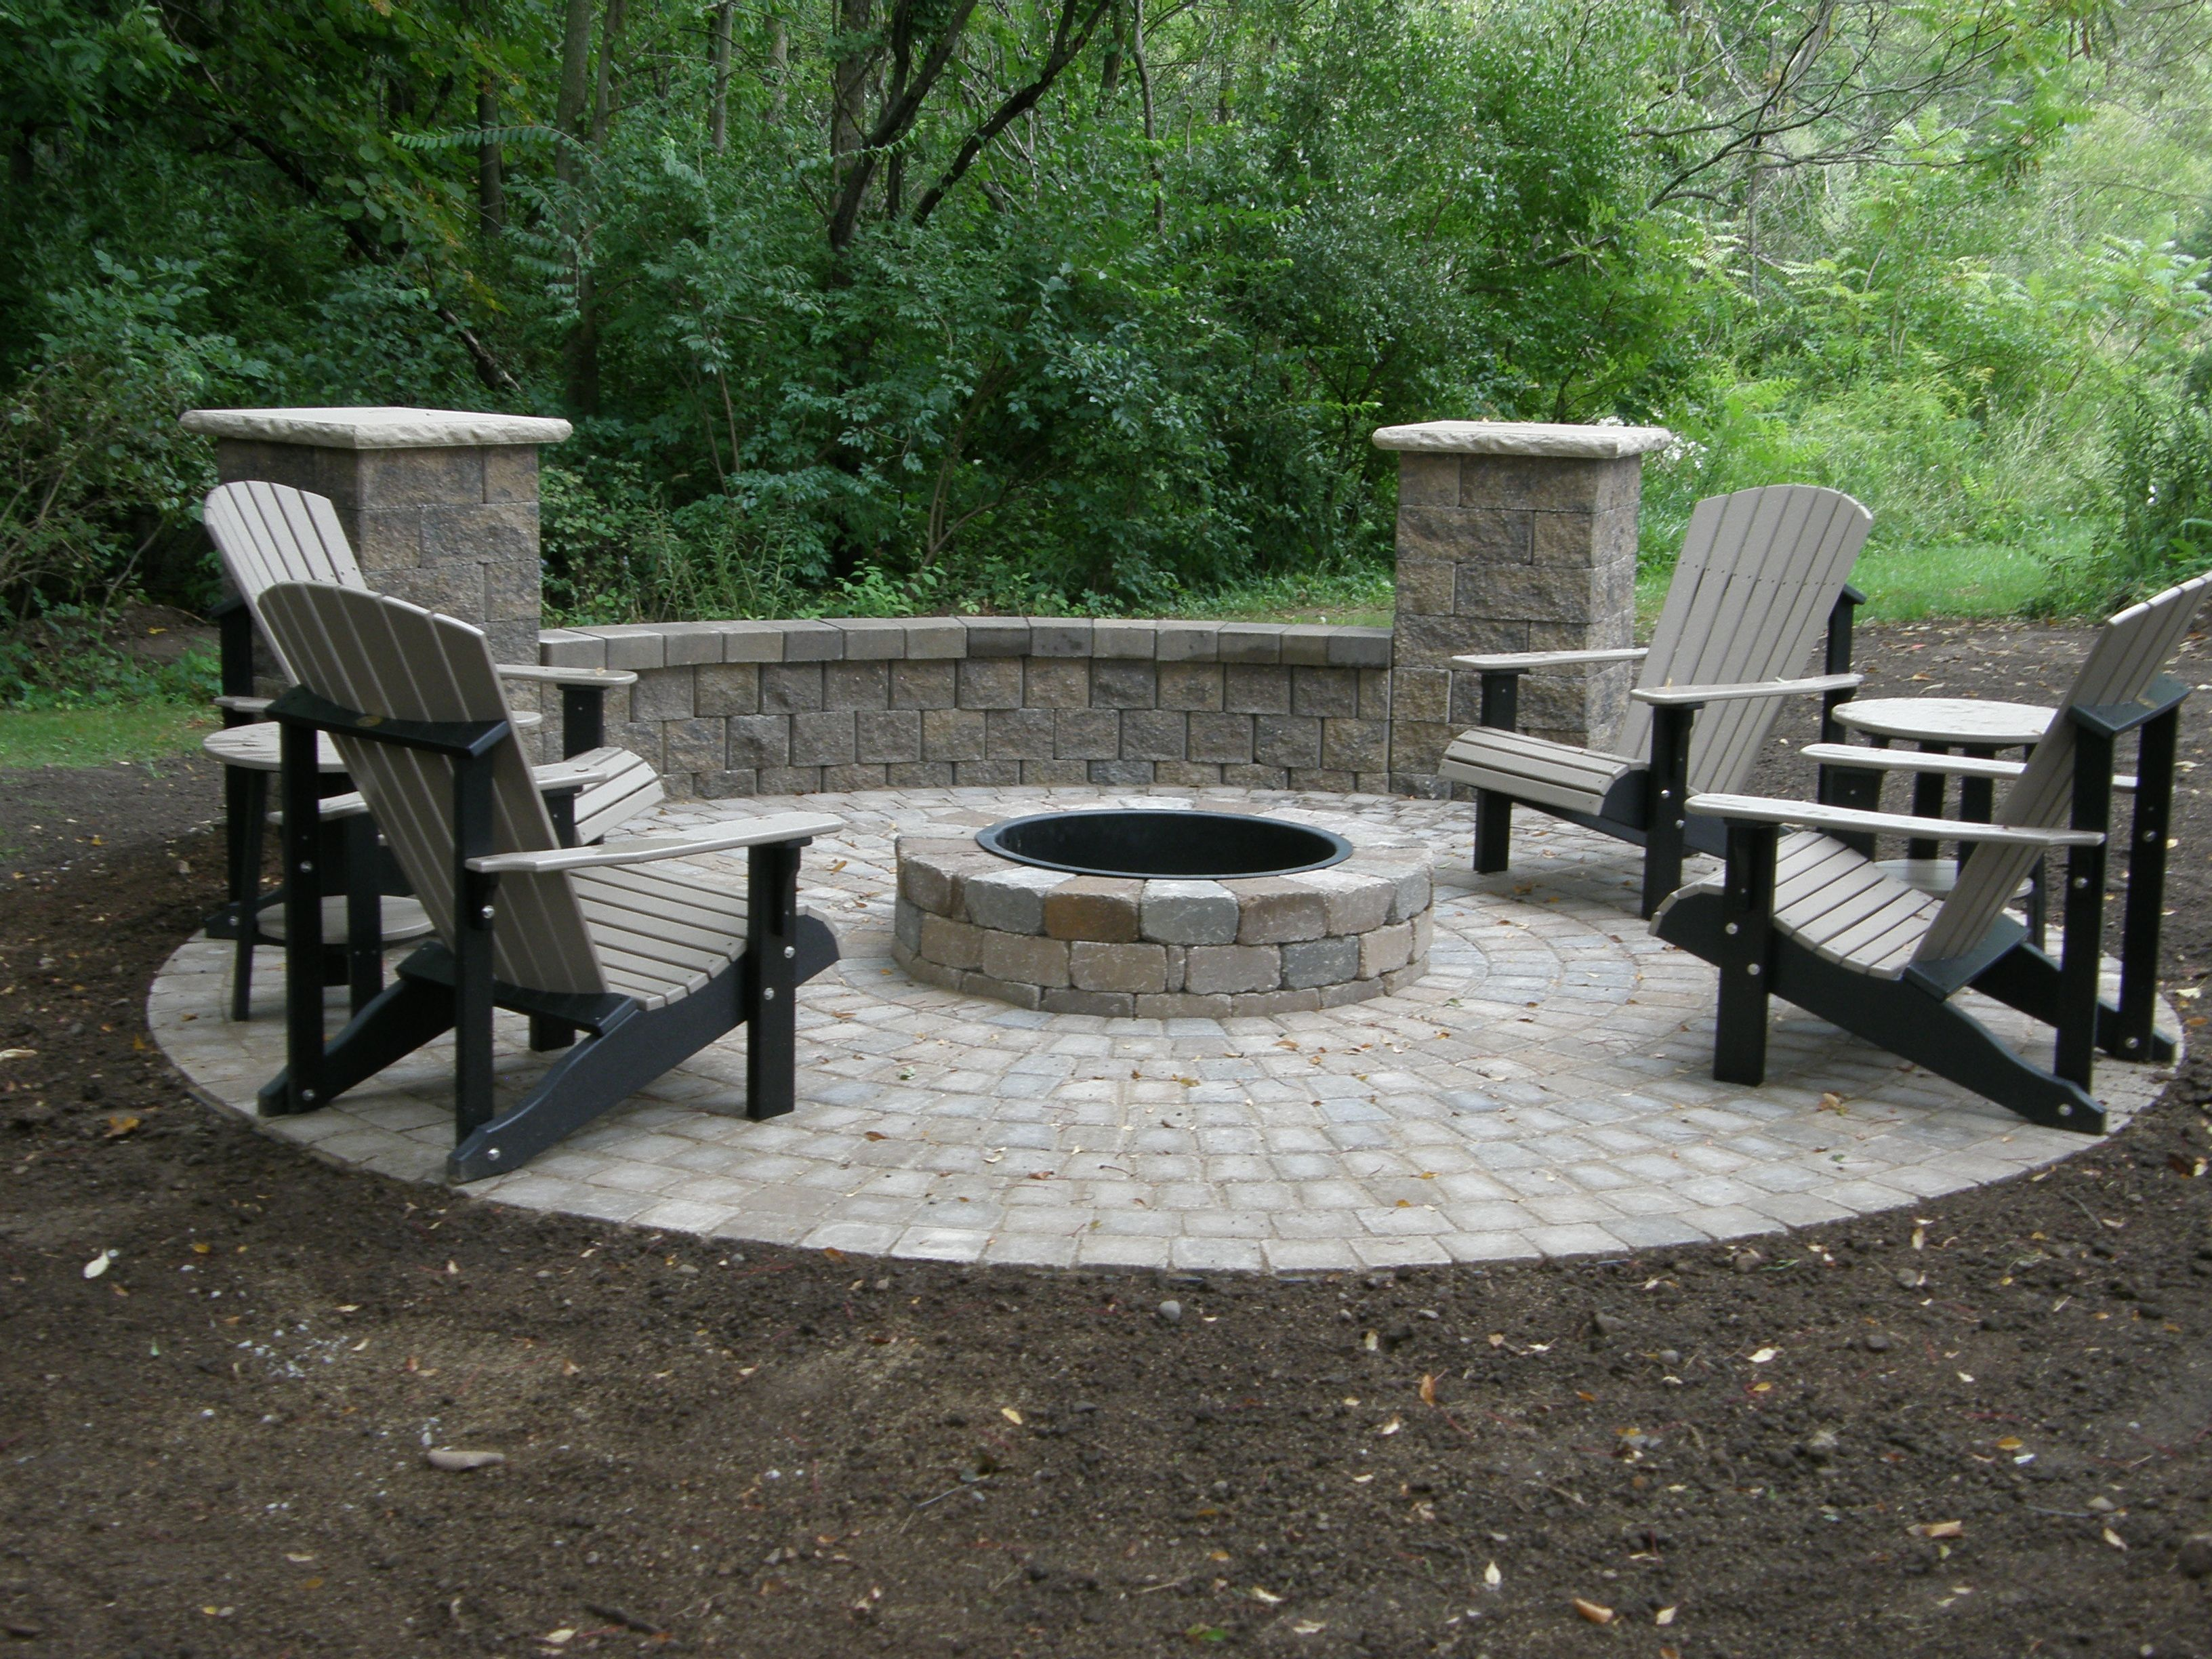 Stone Patio Design Ideas stone patio ideas vernon jones for georgia Backyard Stone Patio Ideas Installing A Flagstone Patio Backyard Seating Ideas Ideas With Circled Grey Paver